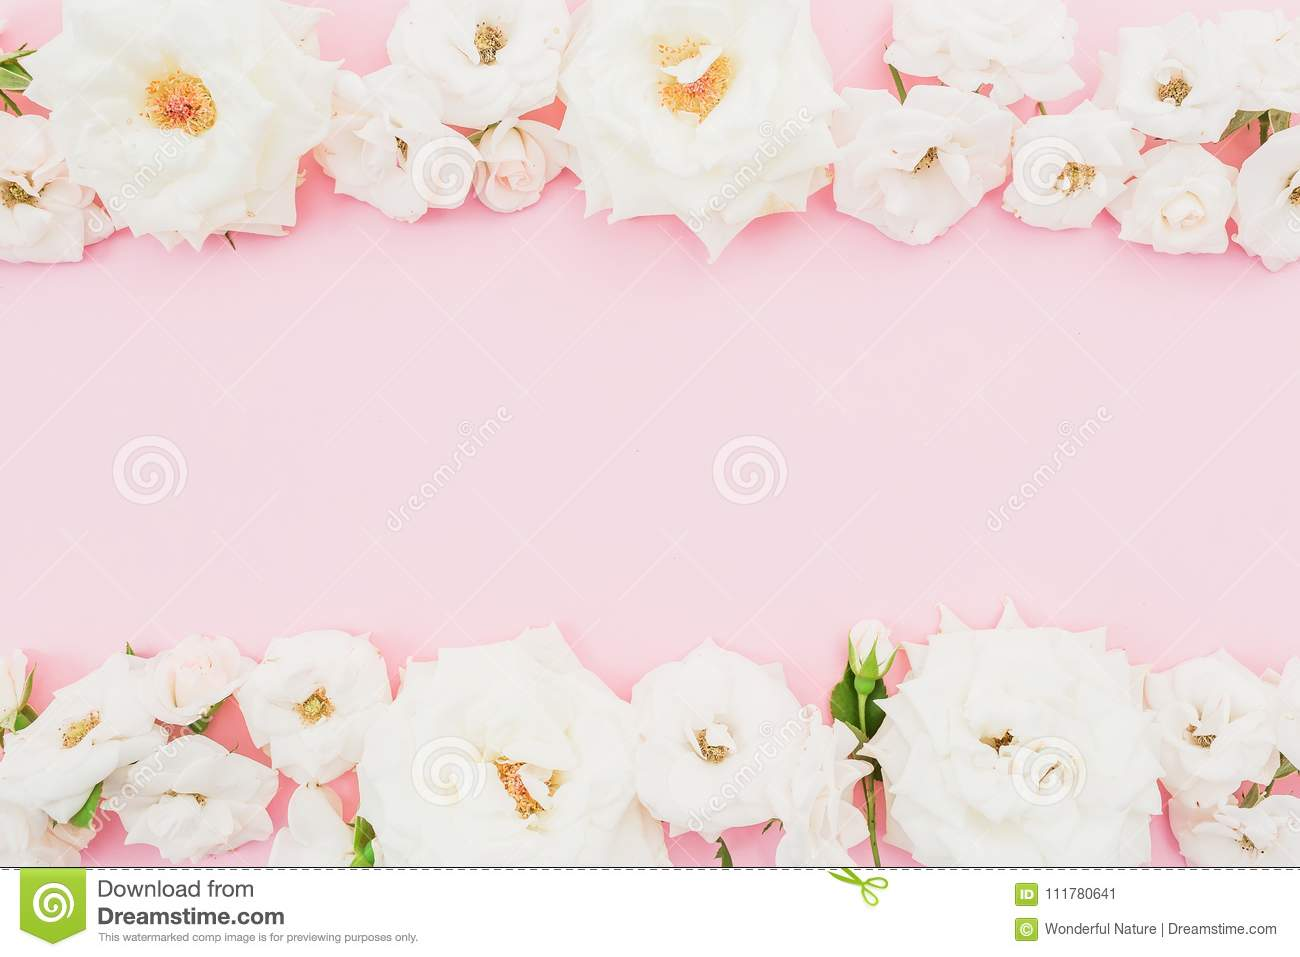 Floral frame with white roses on pink background. Flat lay, top view. Pastel background.